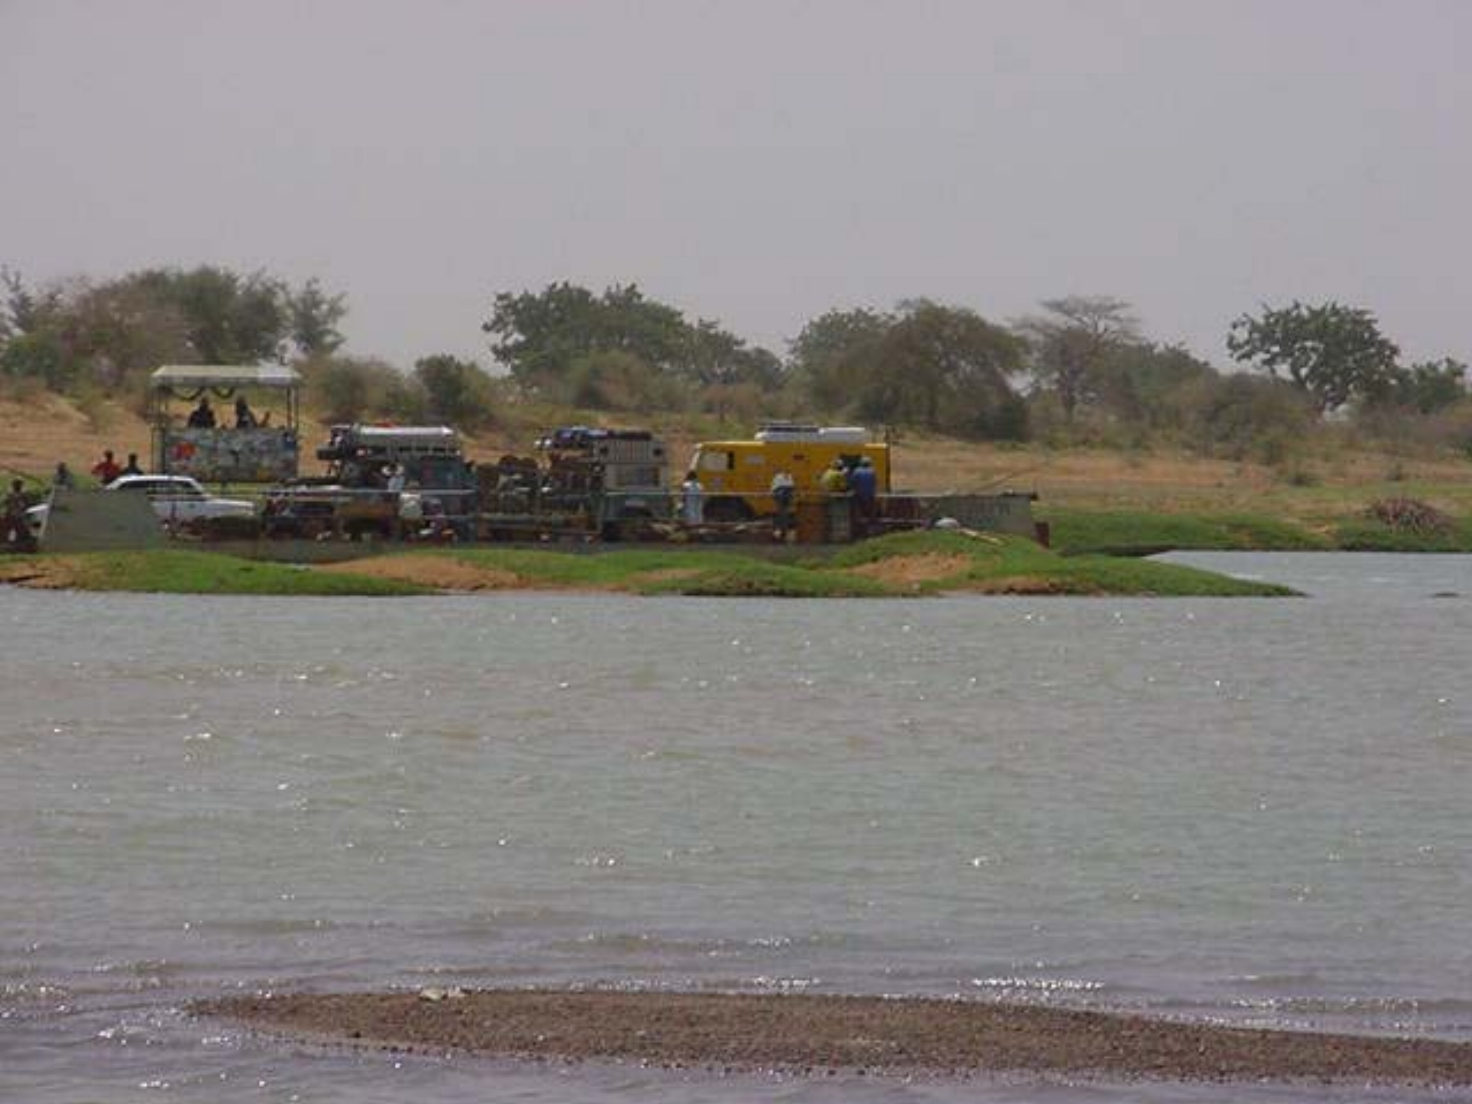 The ferry across the Bani River